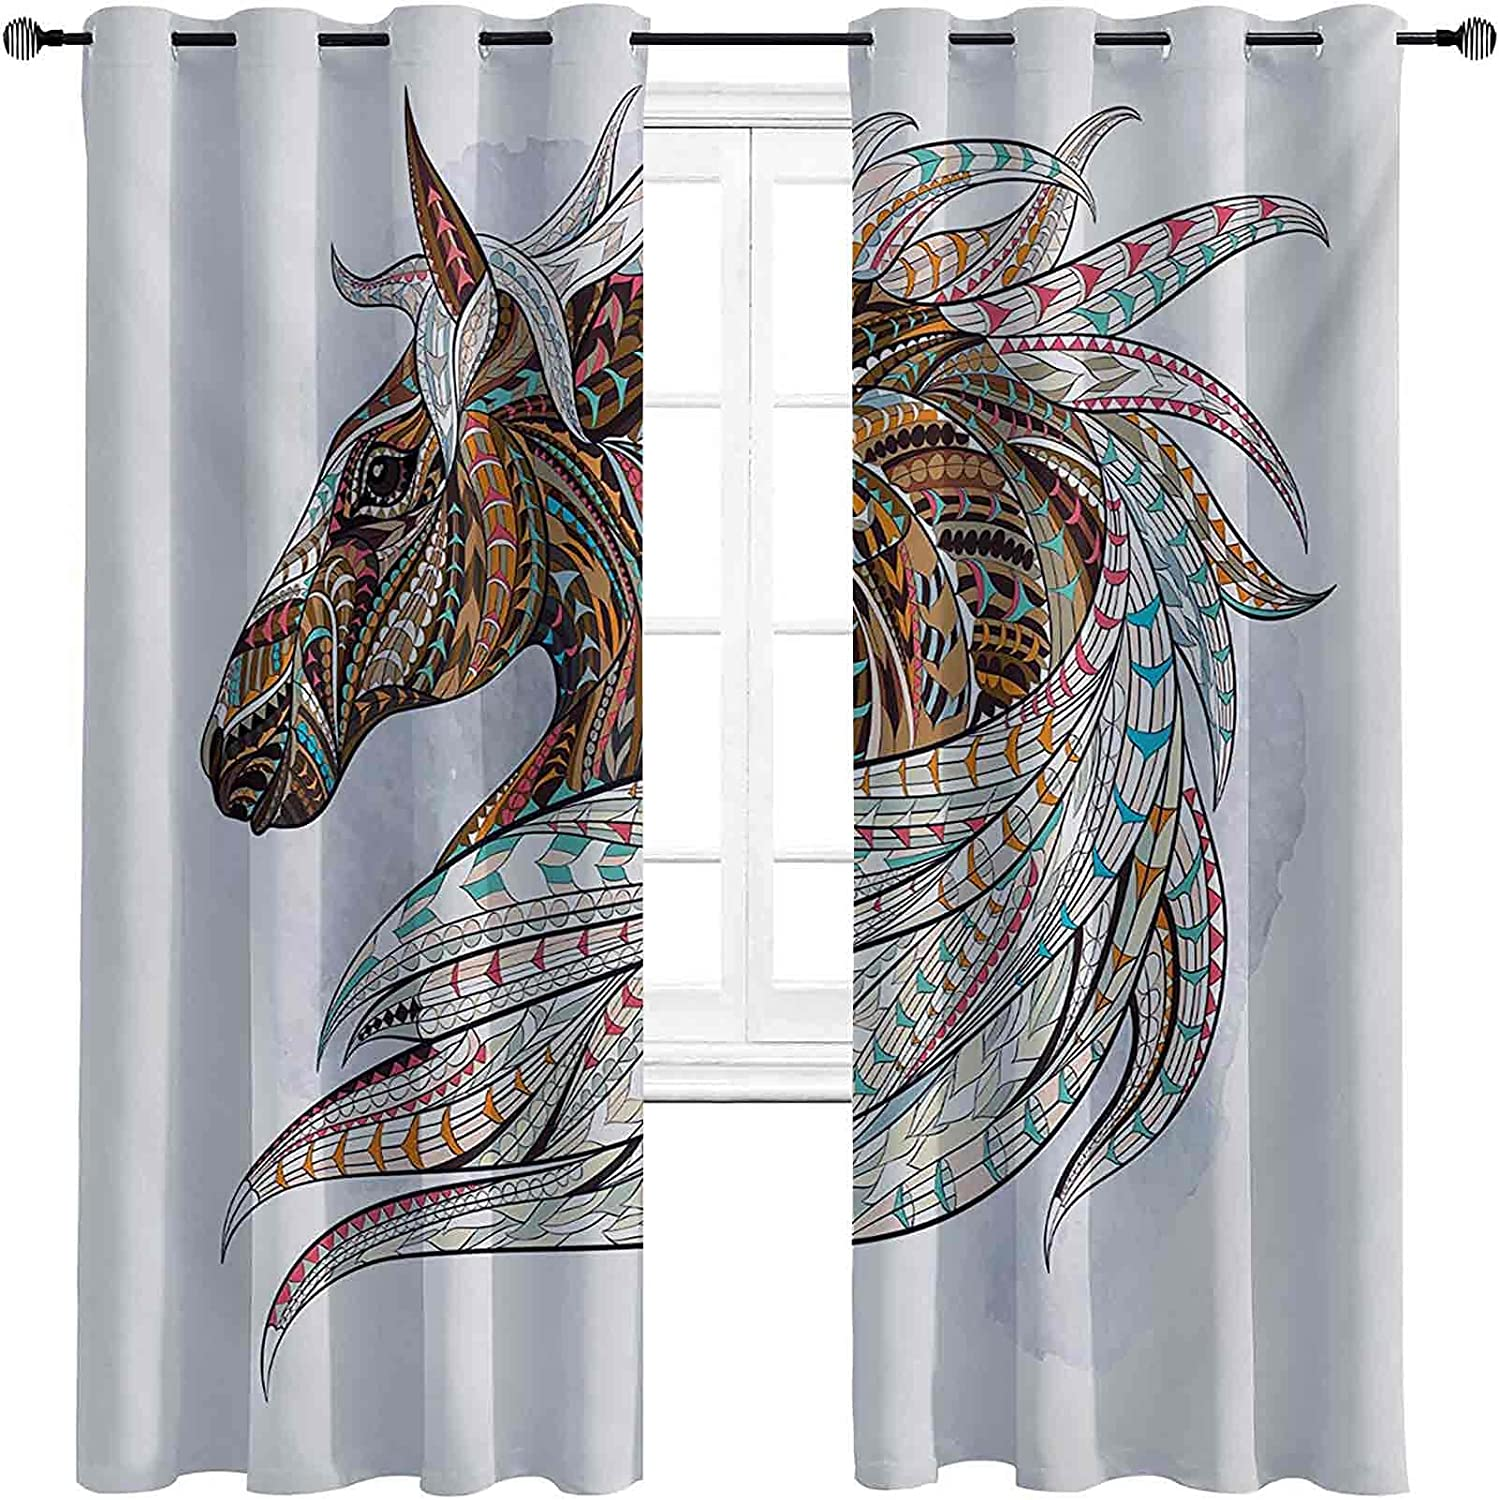 Horse Bedroom Blackout Curtains Indigenous Totem Ranking TOP3 Max 64% OFF M Animal Theme